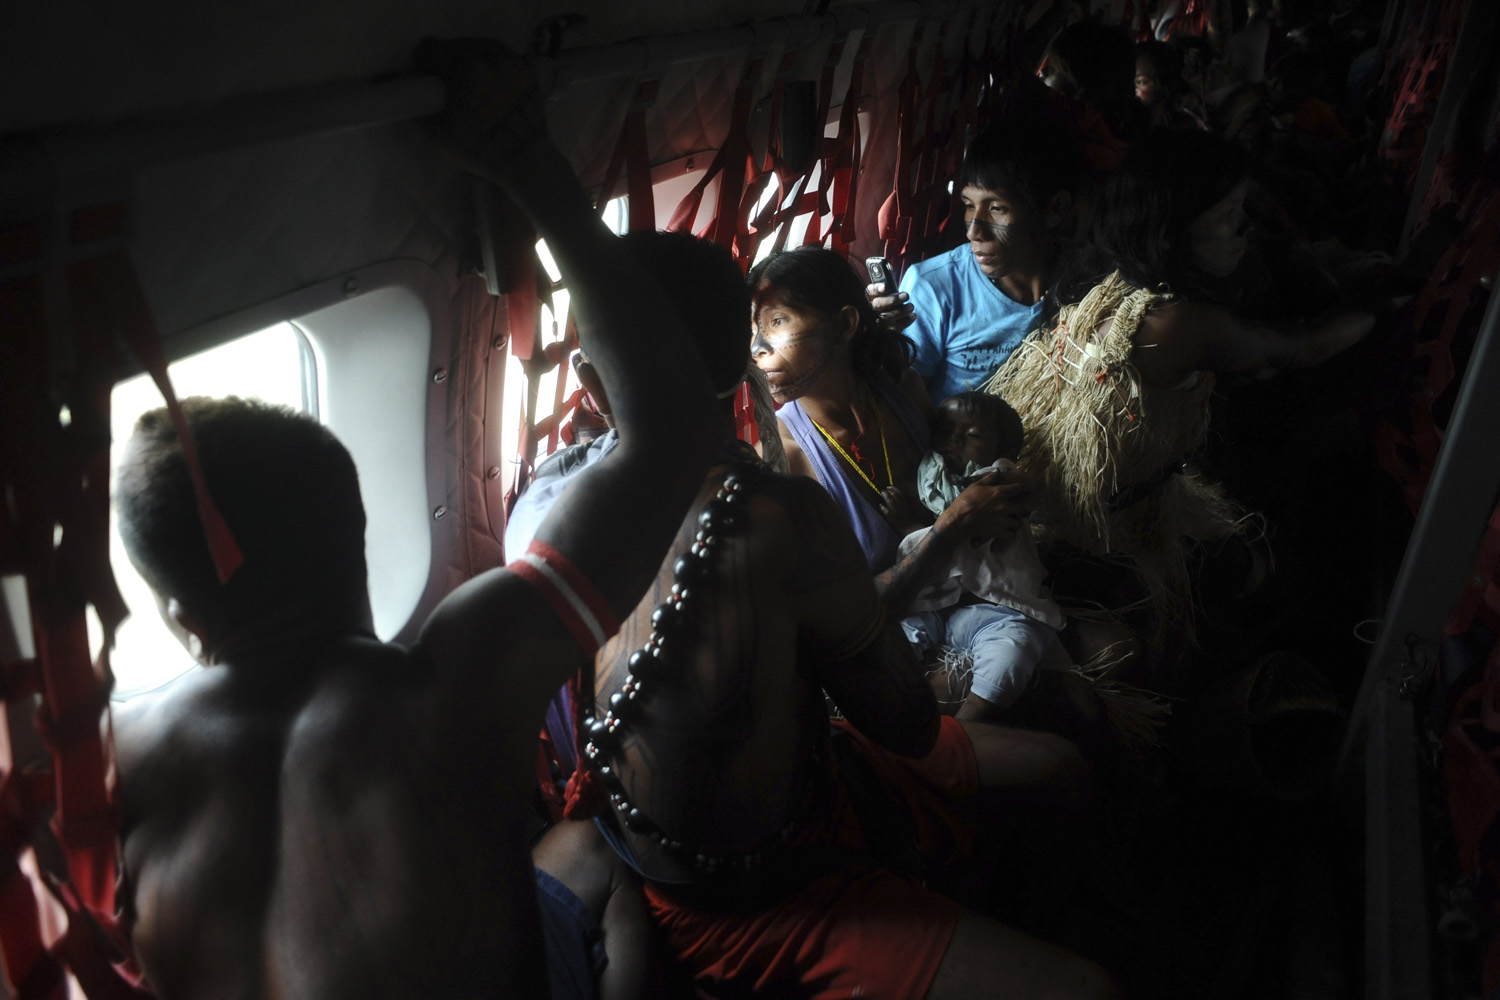 June 4, 2013. Munduruku Indians, many of who are flying for the first time, look out the window of a Brazilian Air Force plane as they are transported them to Brasilia for talks with the government.